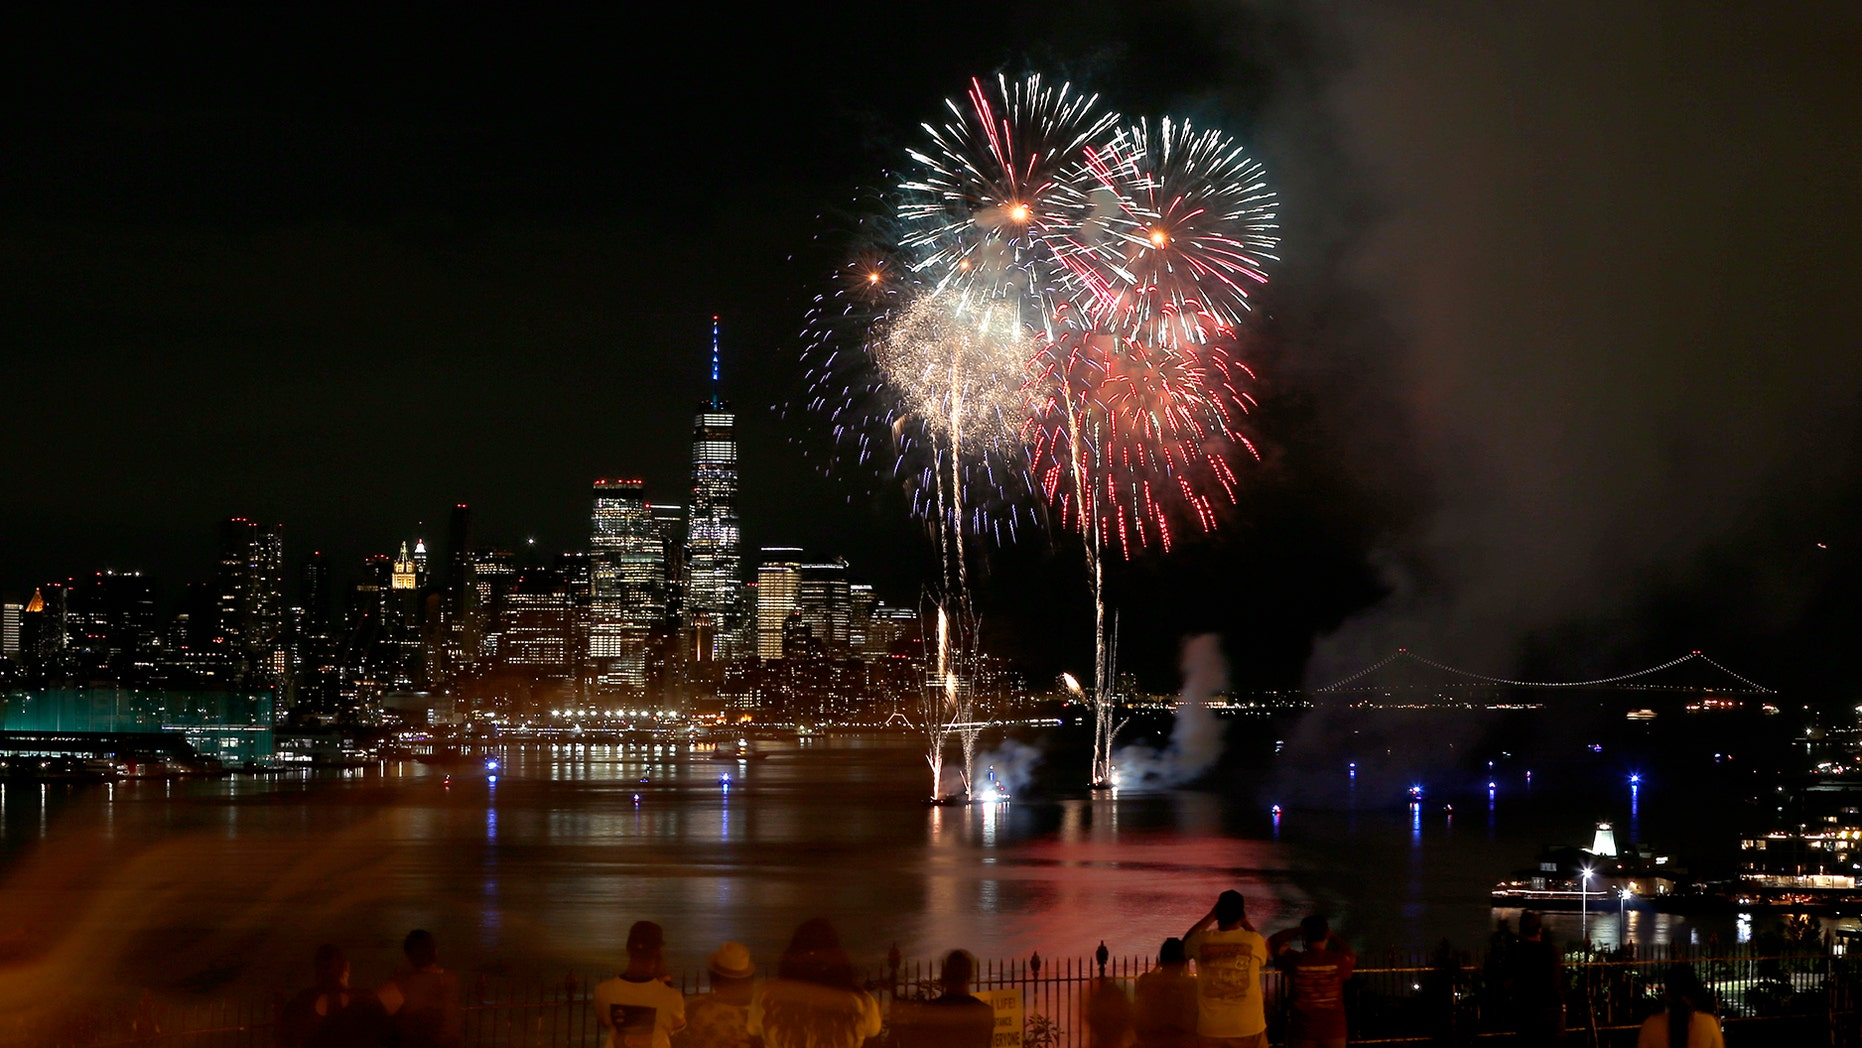 WEEHAWKEN, NJ - JUNE 30: Fireworks explode over lower Manhattan and One World Trade Center on the second of six nights of the Macy's July 4th fireworks shows in New York City on June 30, 2020 as seen from Weehawken, NJ. (Photo by Gary Hershorn/Getty Images)